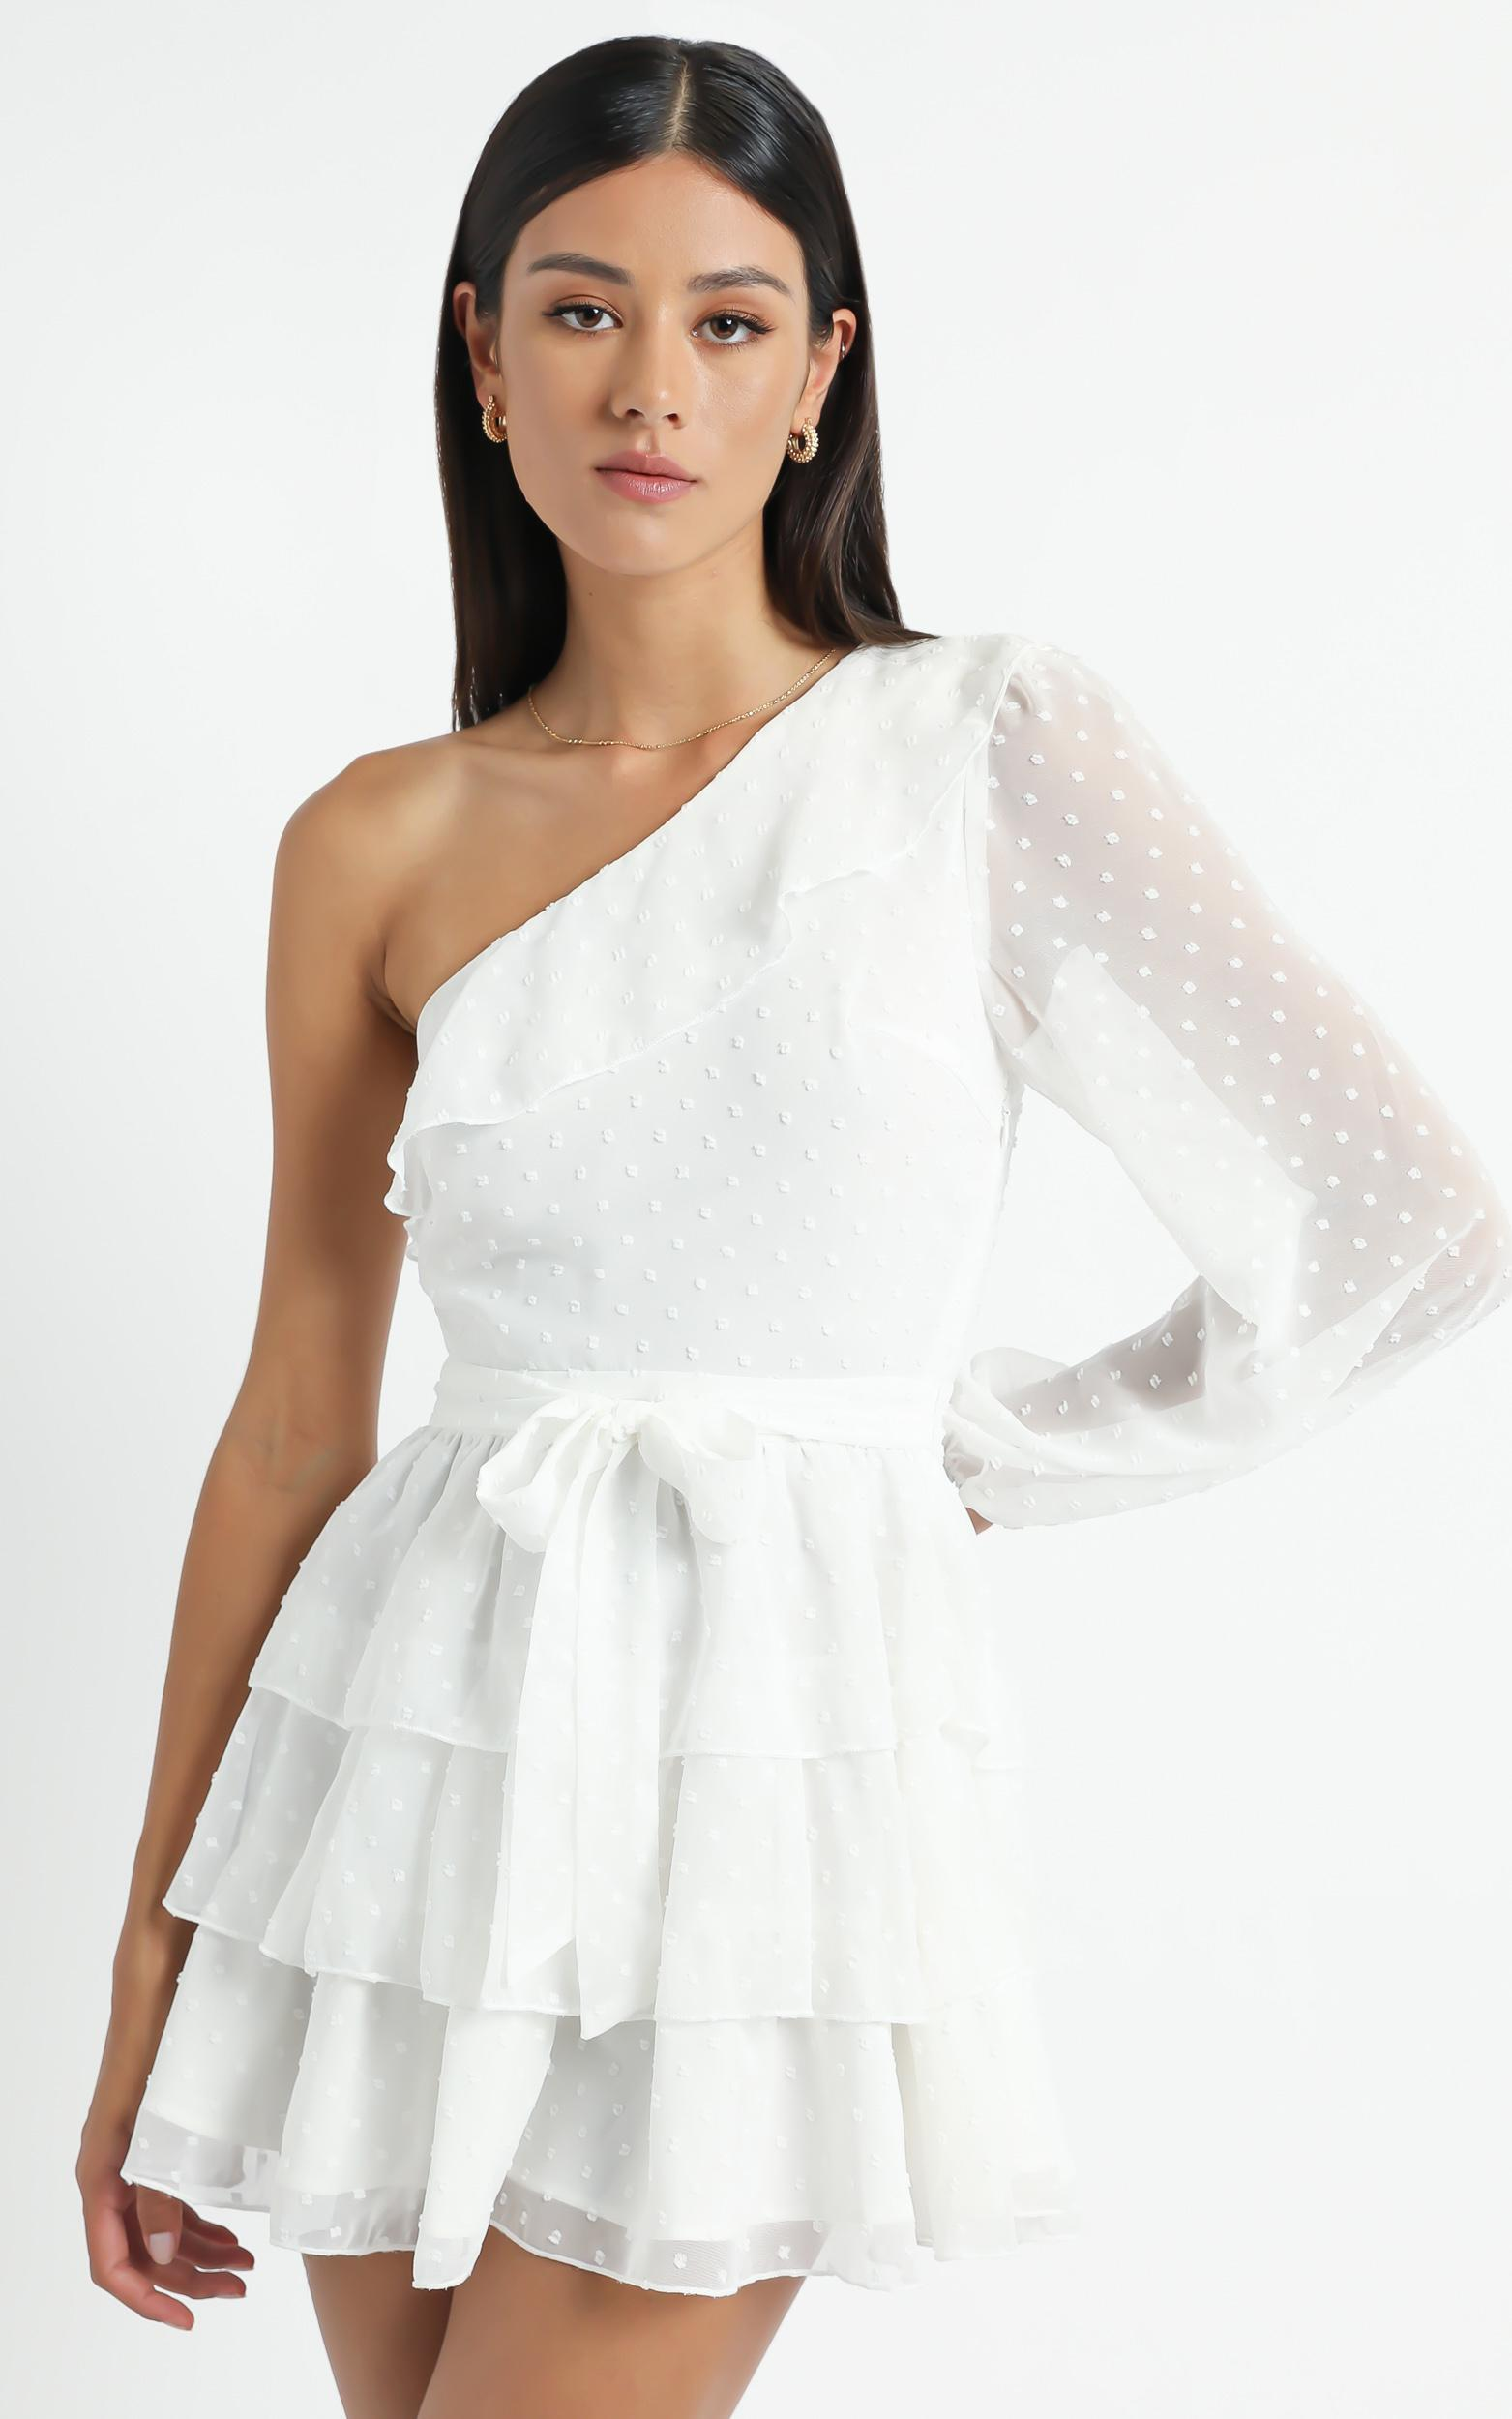 Day Dreamer One Shoulder Mini Dress in White - 4 (XXS), White, hi-res image number null